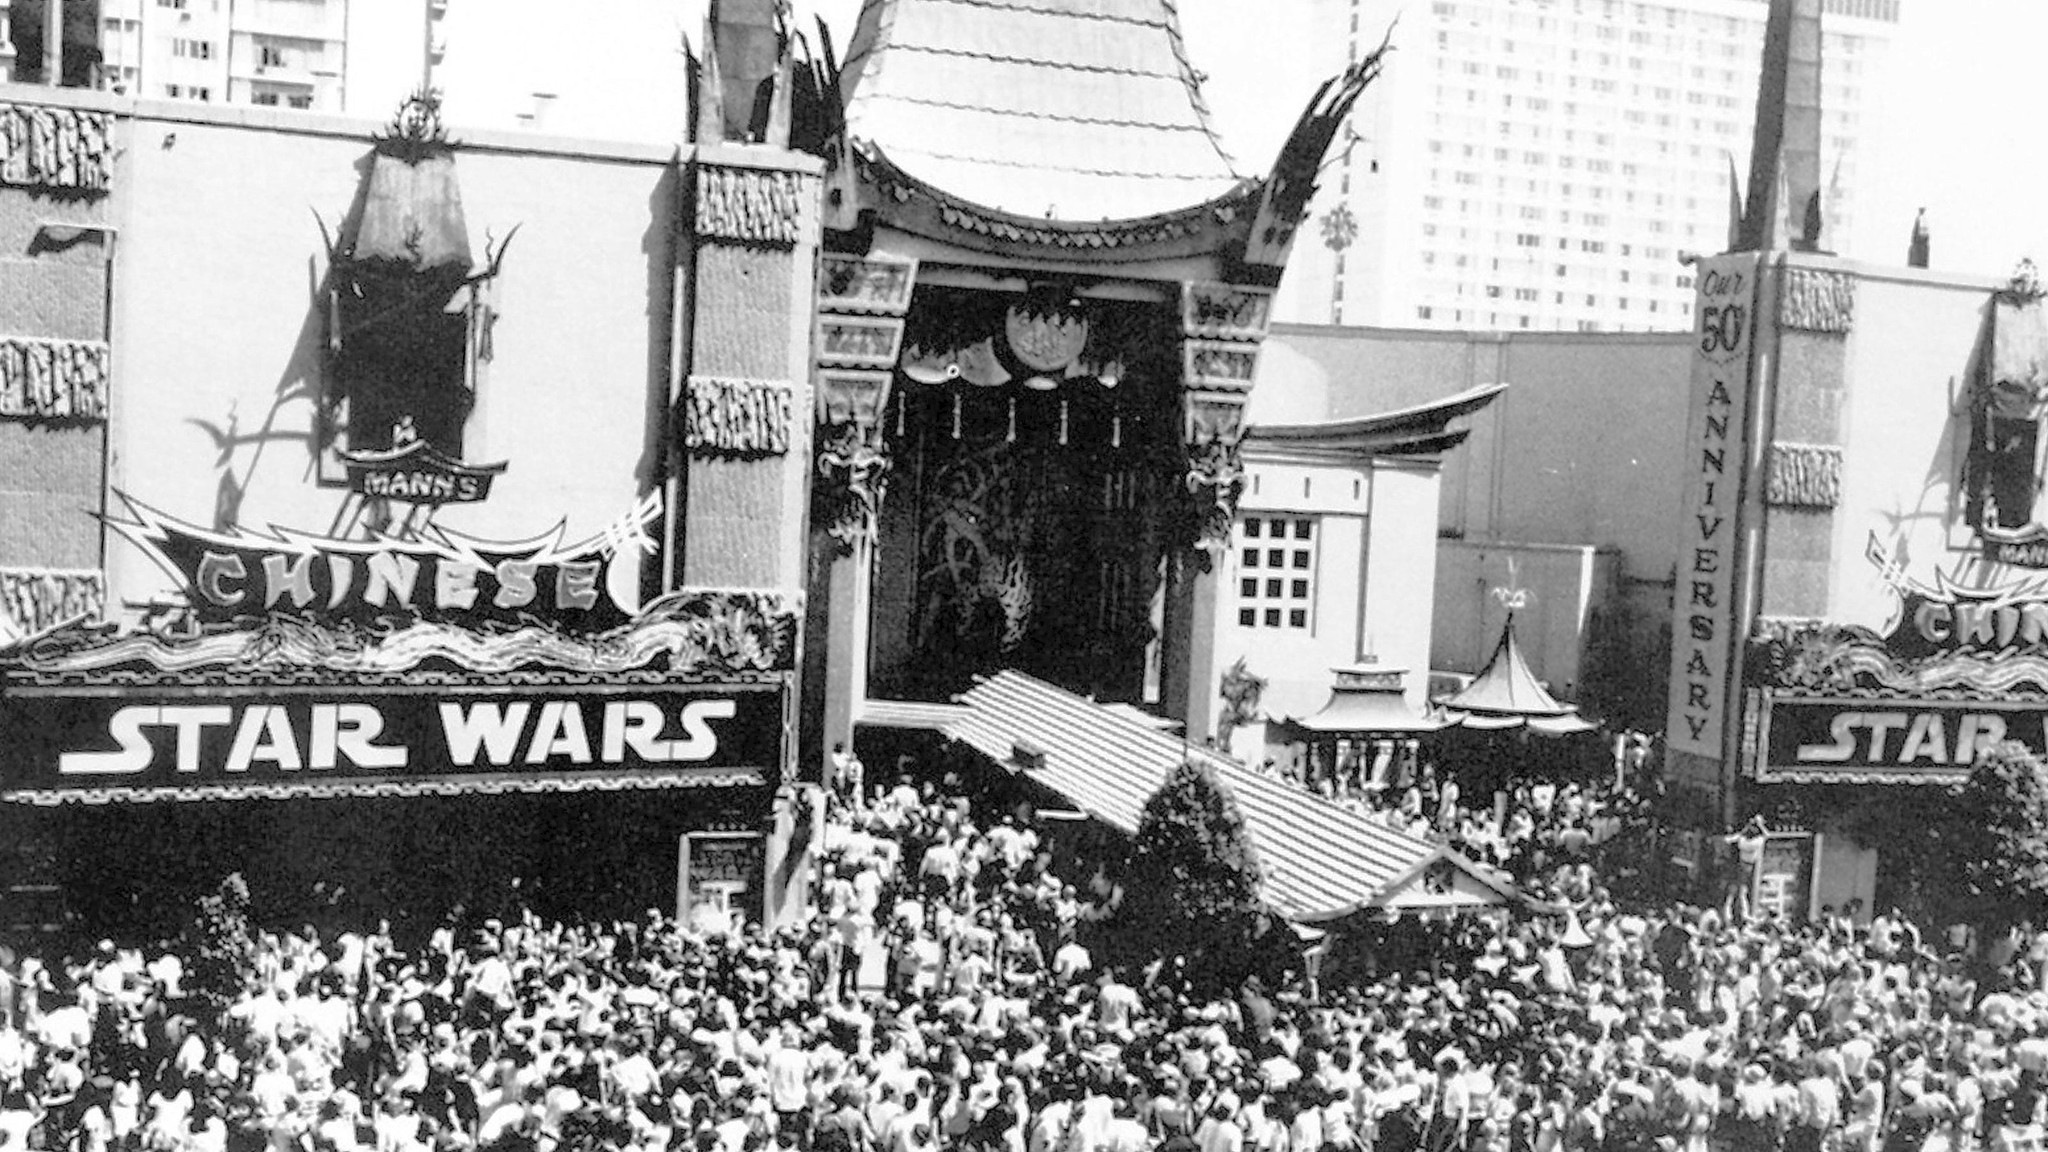 Star Wars Chinese Theatre 1977